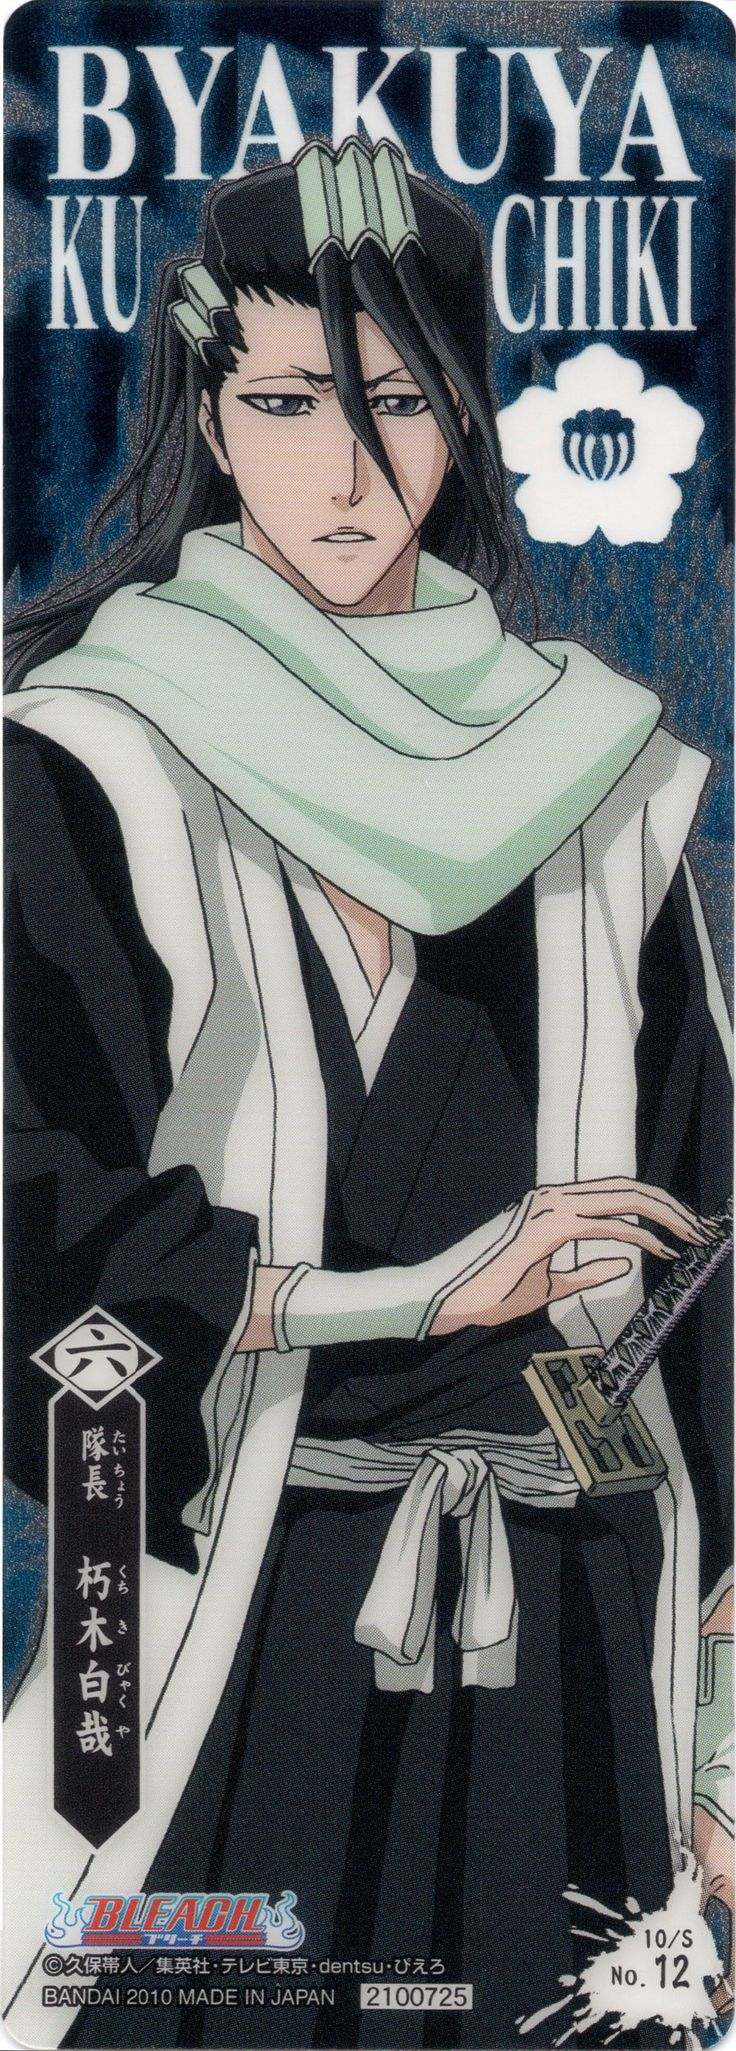 Bykuya Bookmark by mollymous.deviantart.com on @DeviantArt #bleach